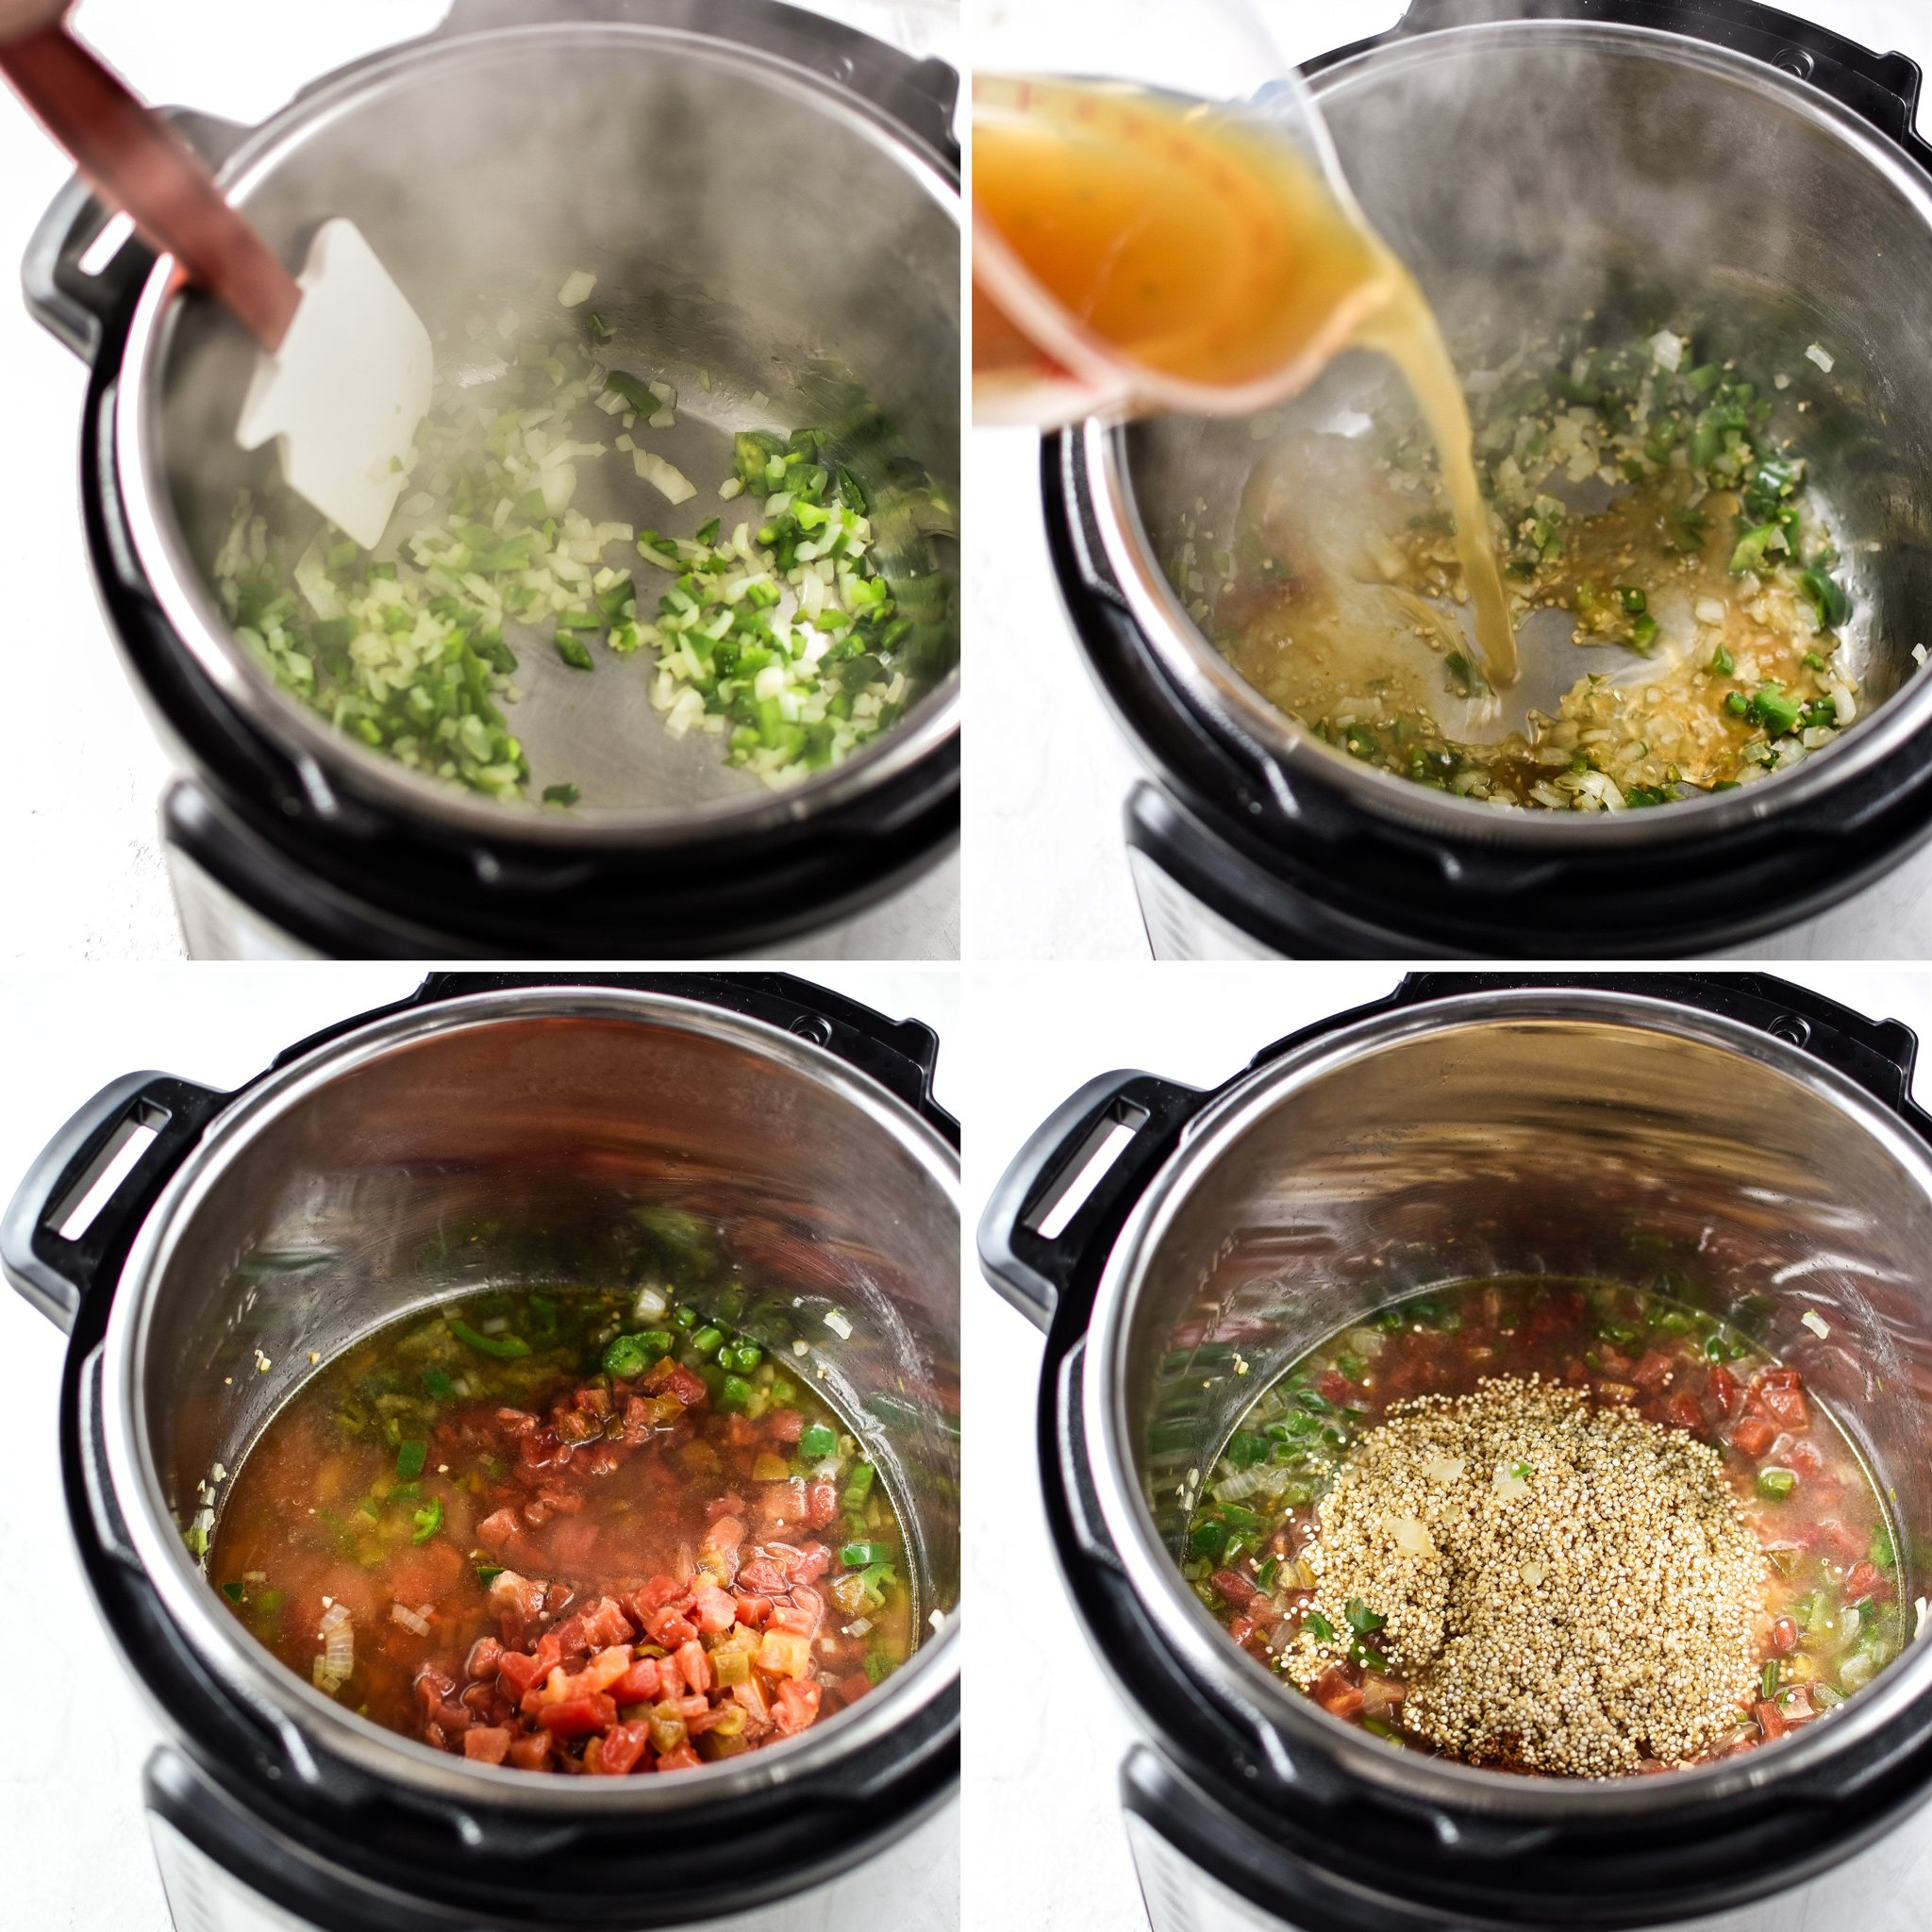 Four photos showing steps to making Mexican Quinoa in the Instant Pot. Start with jalapenos and onion, add broth, tomatoes, quinoa, then cook.